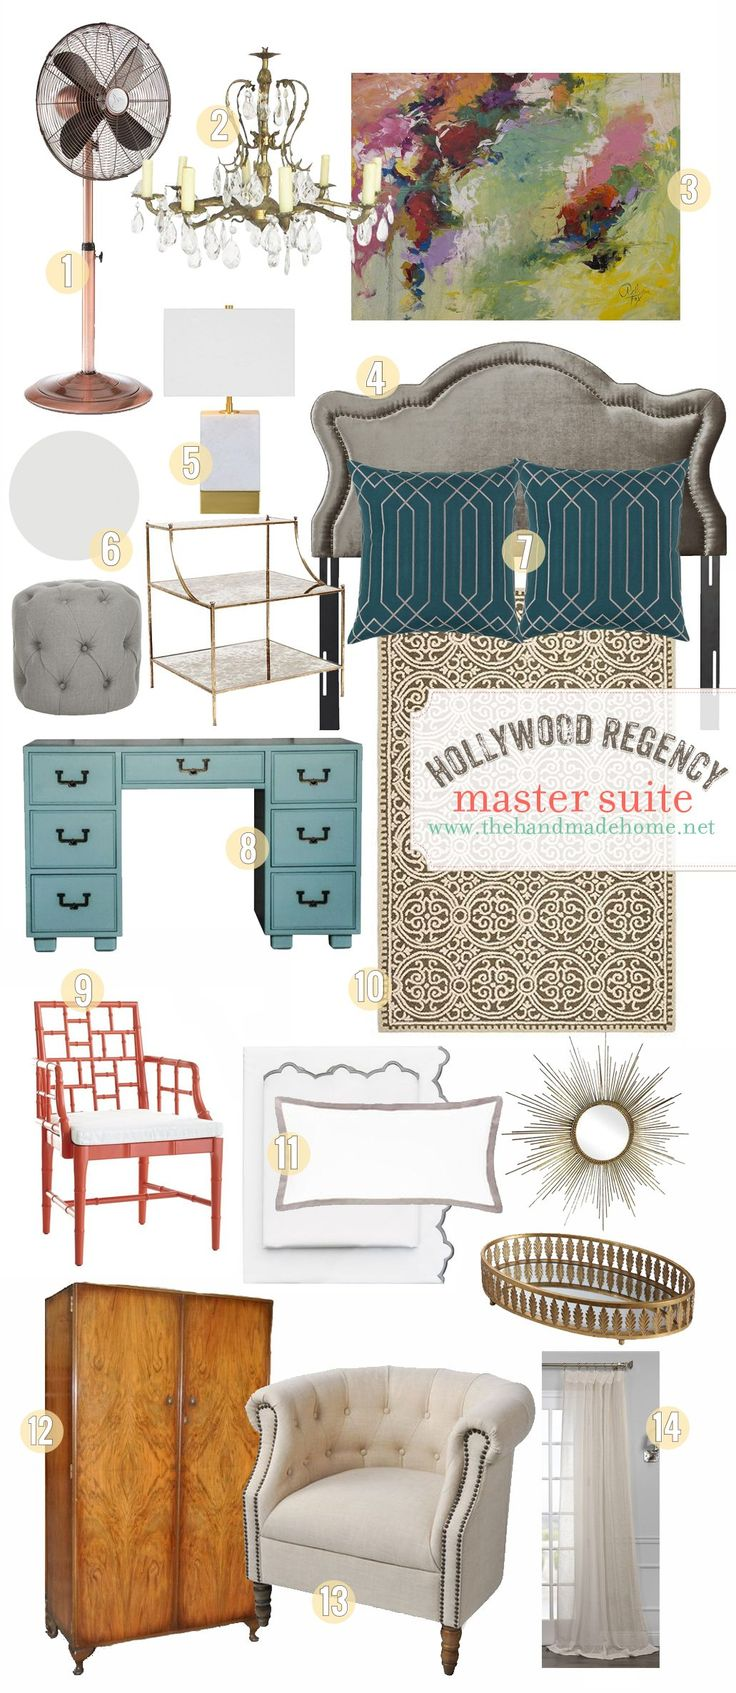 hollywood regency master suite - the handmade home